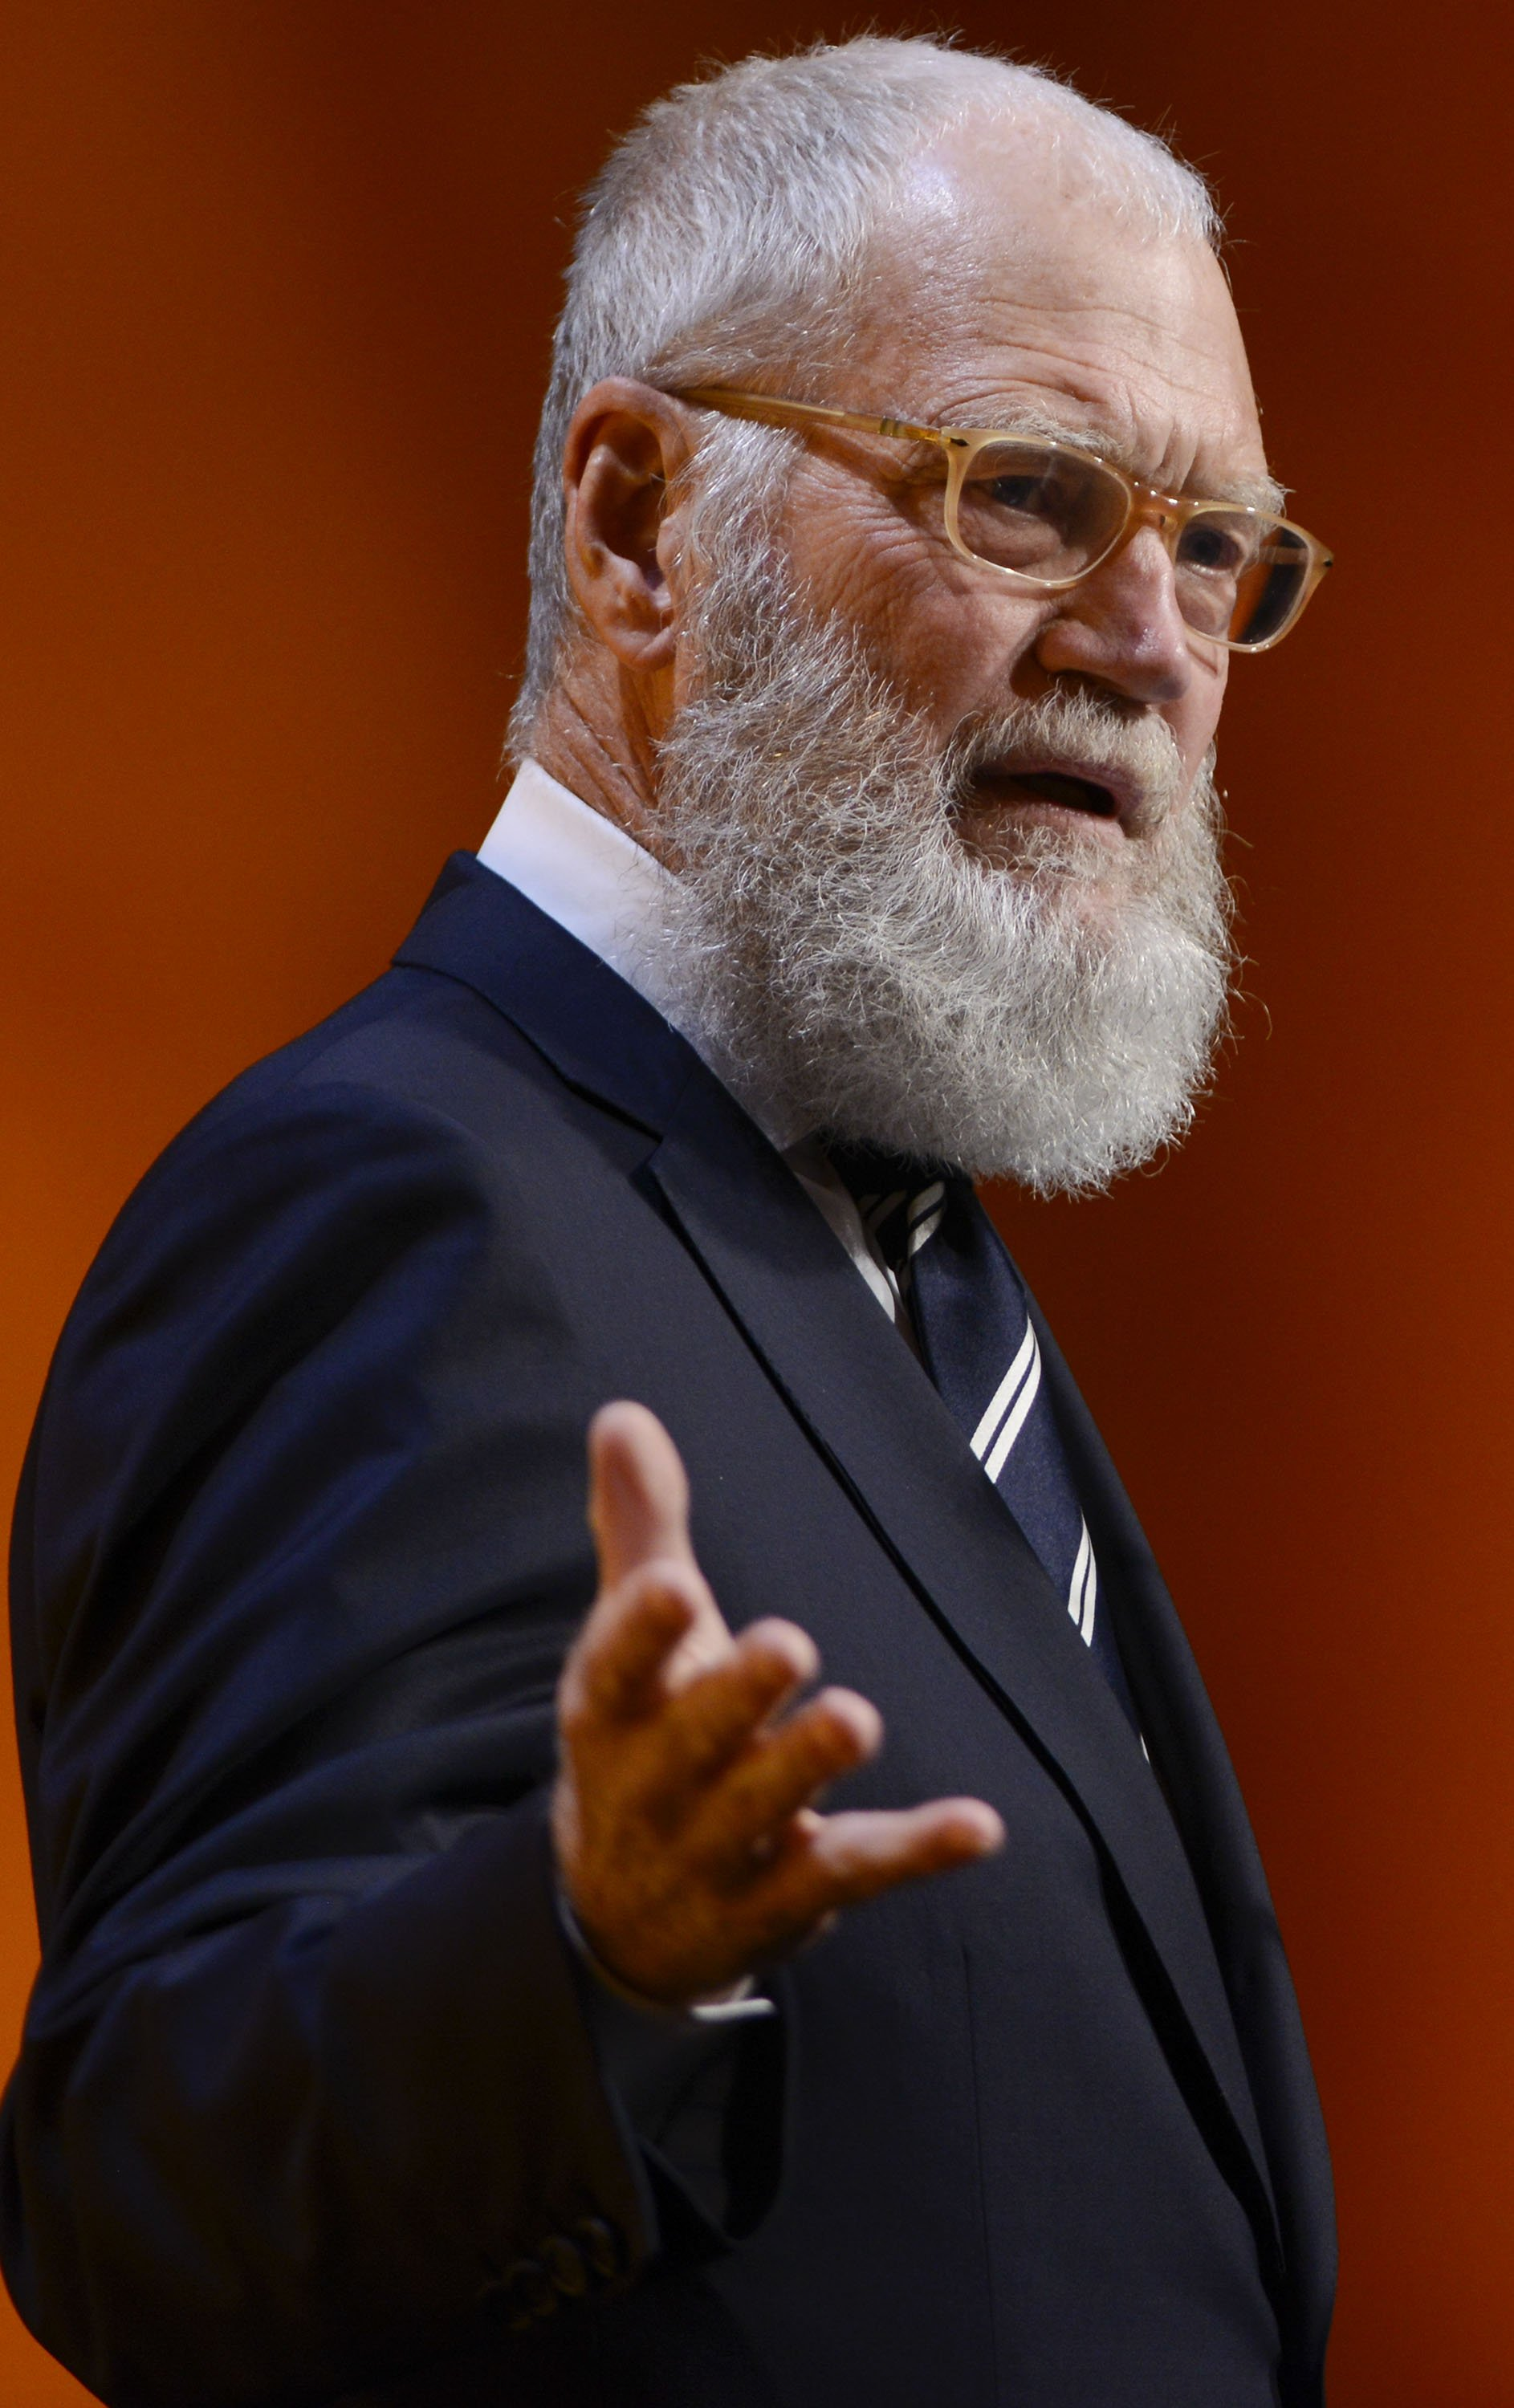 David Letterman speaks at the 32nd Anniversary Gala Fundraiser at National Building Museum on November 17, 2016, in Washington, DC. | Getty Images.